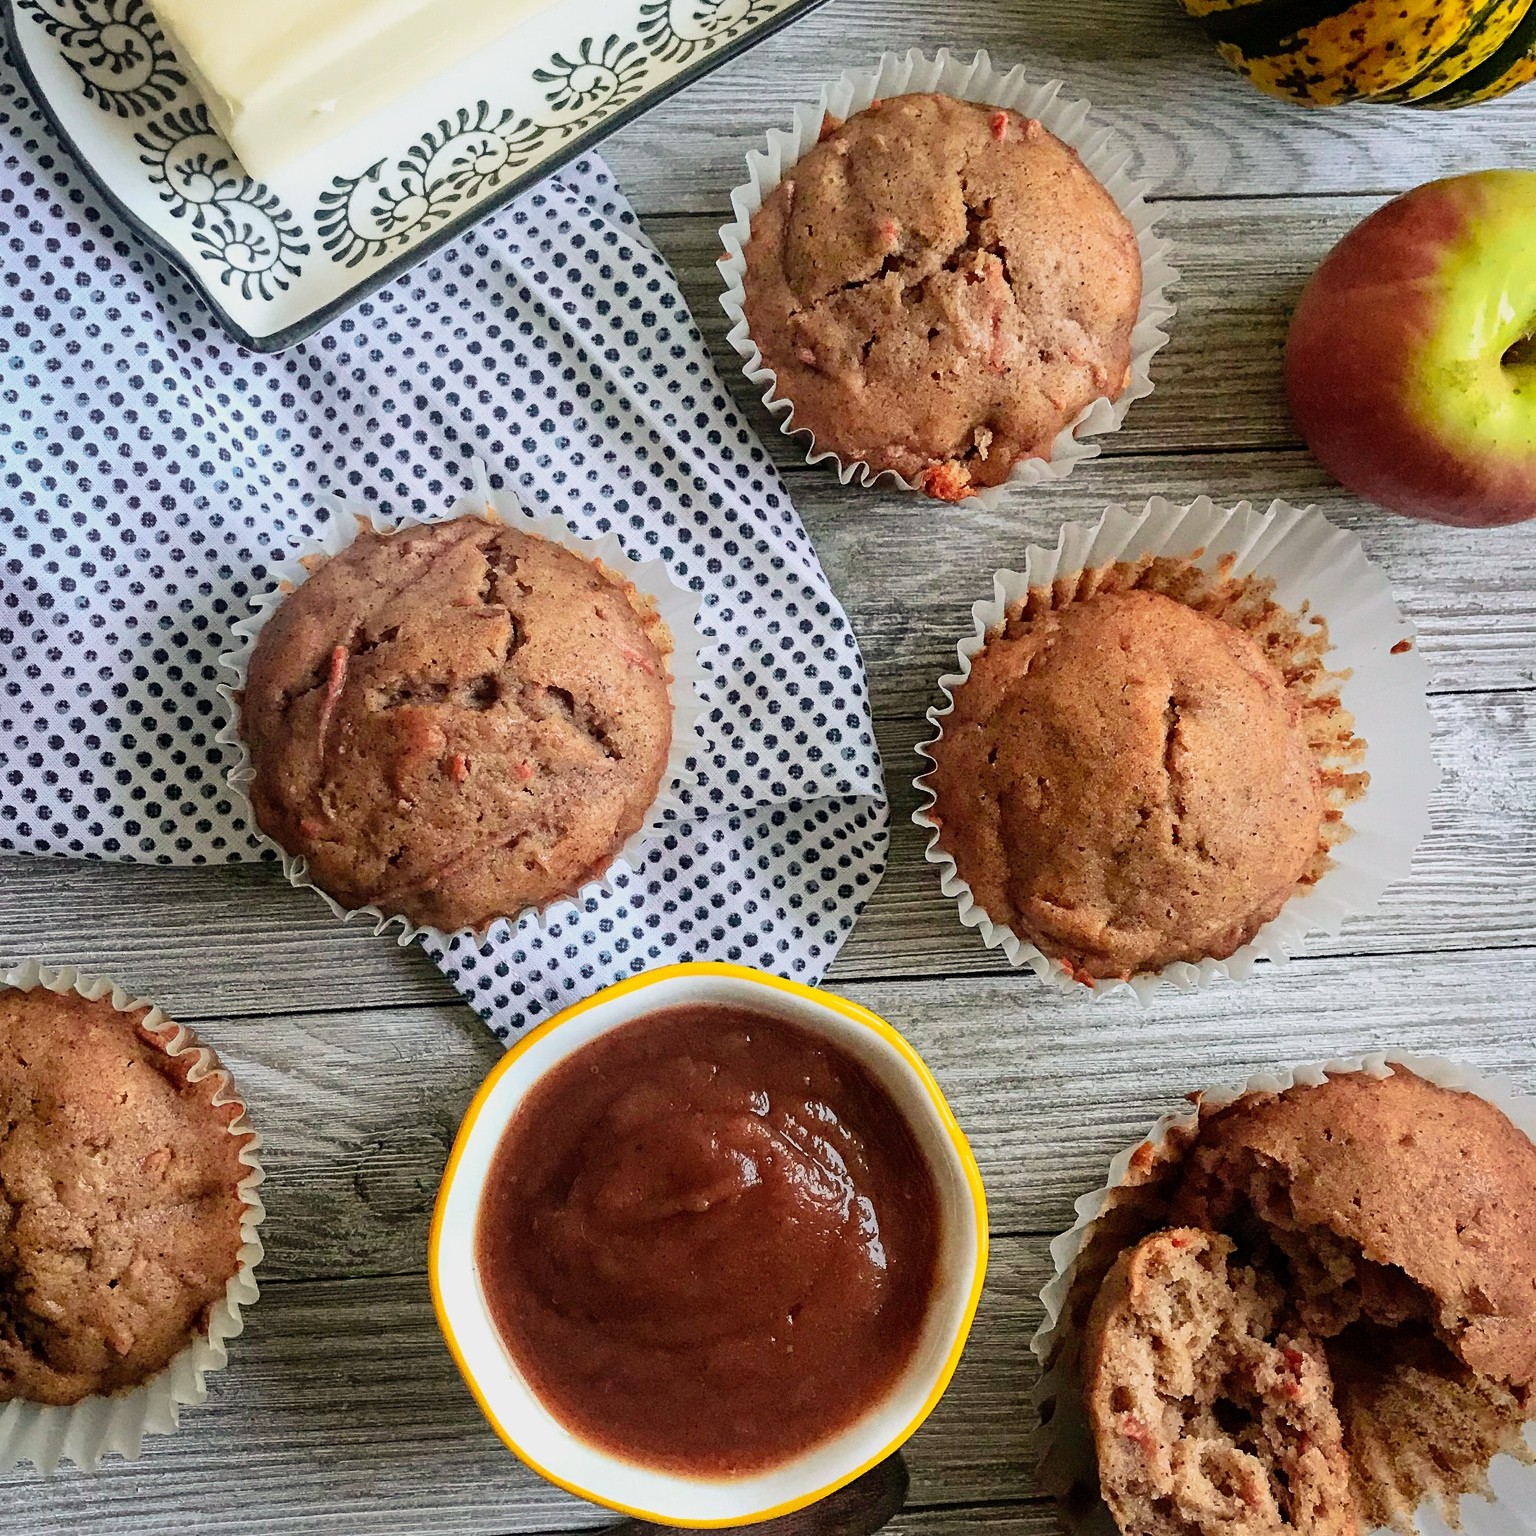 Apple Butter and Carrot Muffins